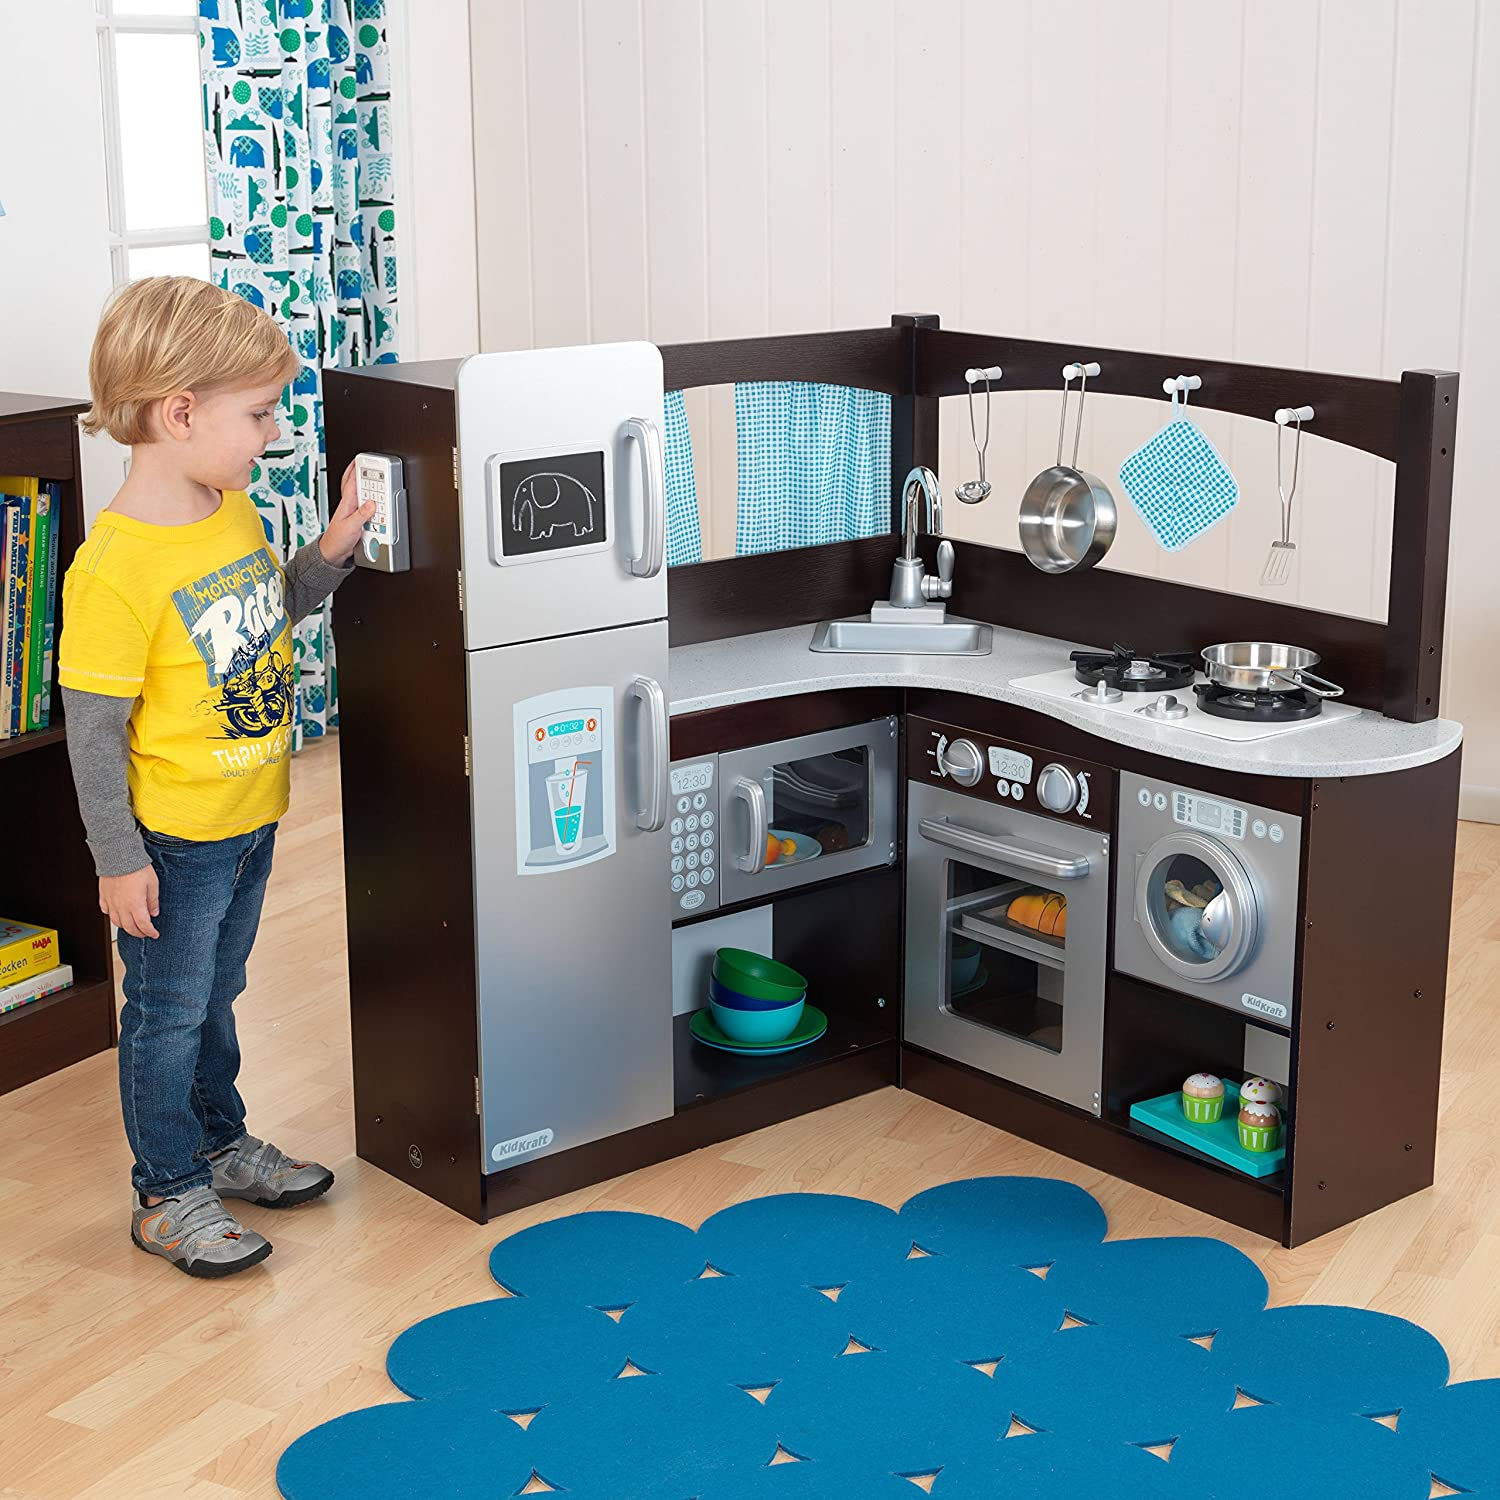 Amazon.com: KidKraft Grand Espresso Corner Kitchen: Toys & Games